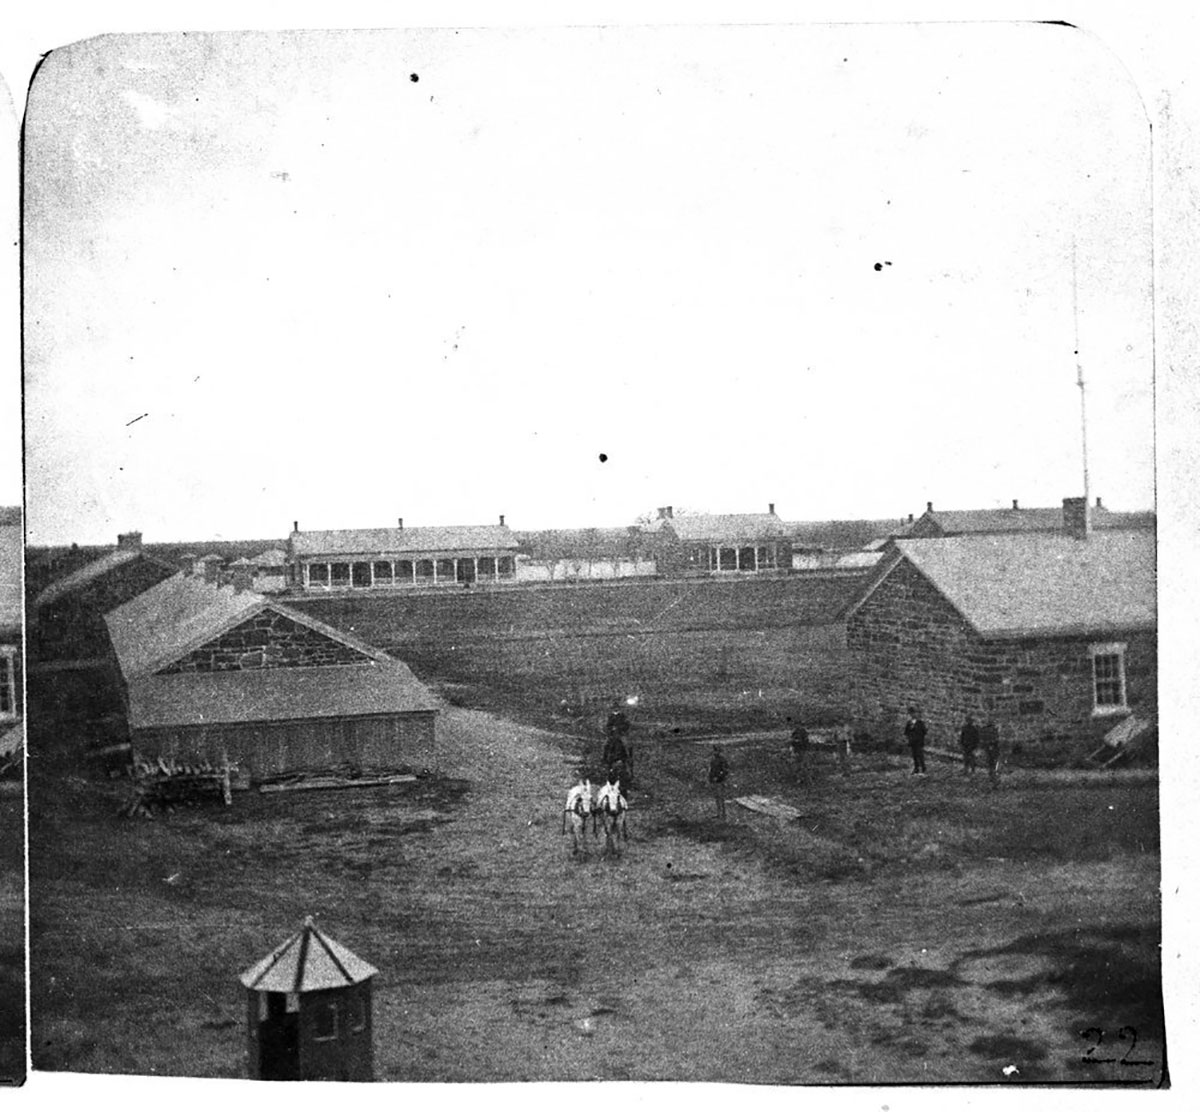 View of block house and parade ground of early Fort Larned. Date: 1860-1878 (Photo via Kansas Historical Society / kansasmemory.org)